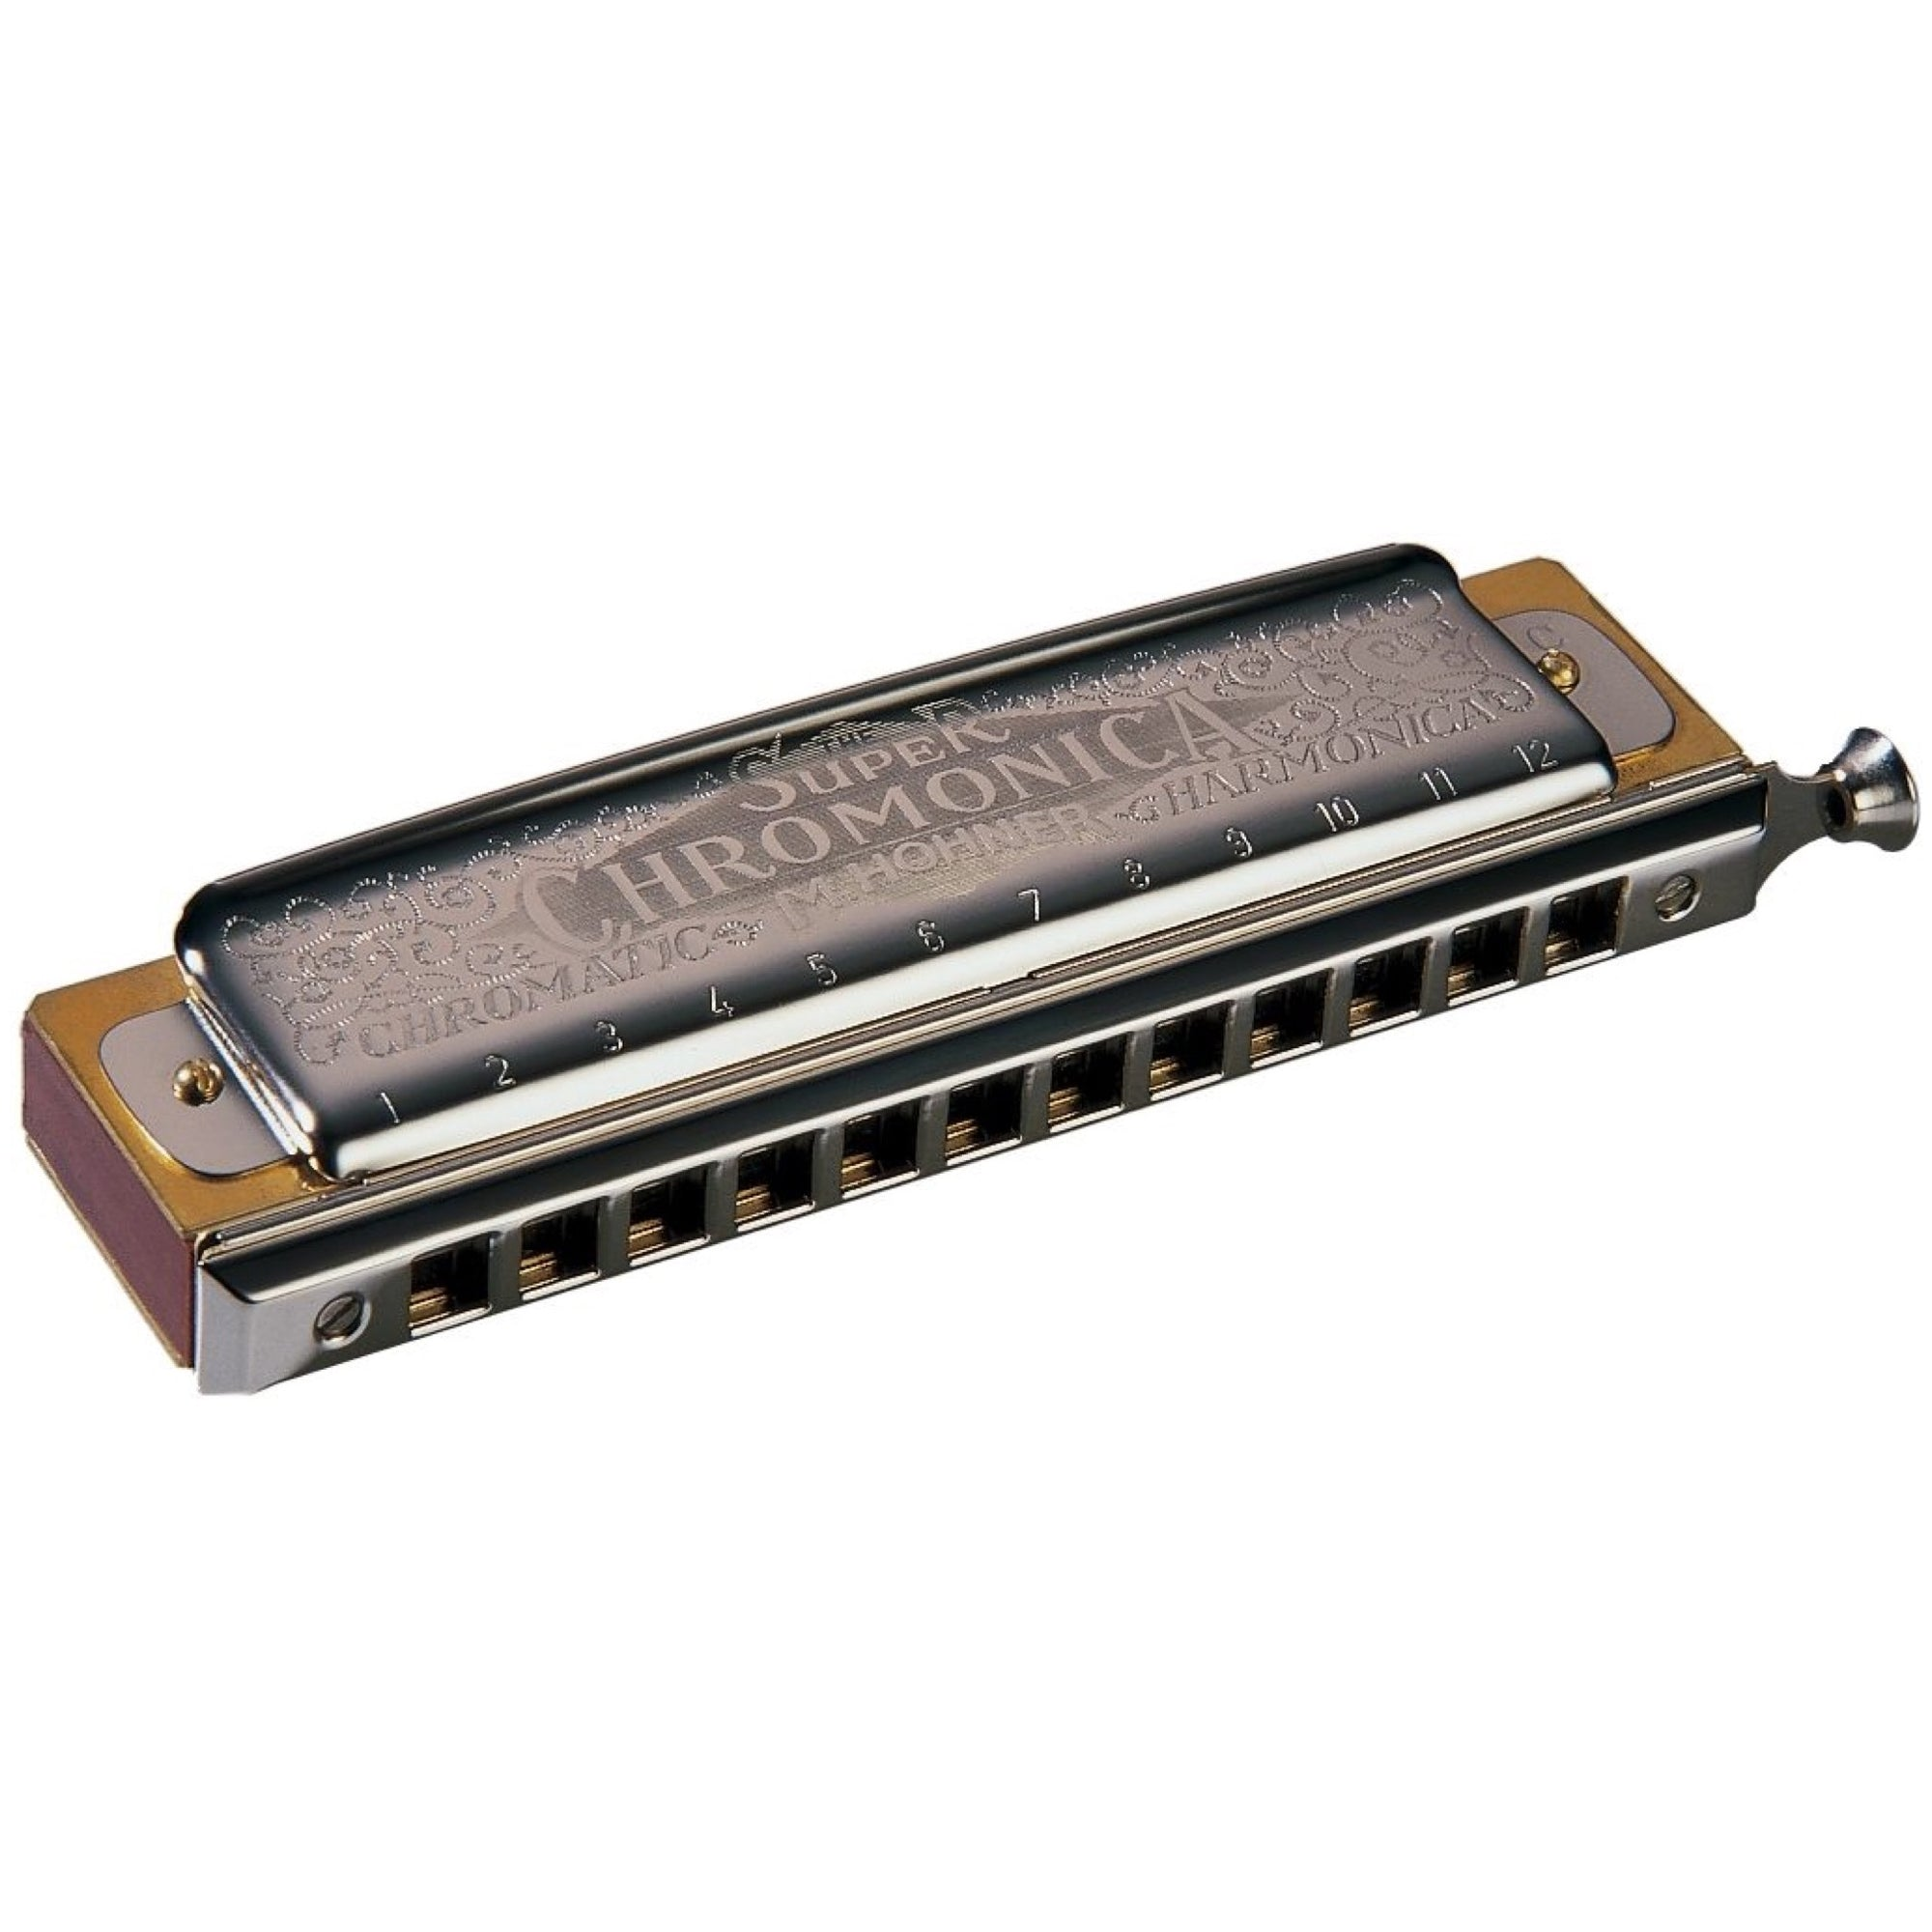 Hohner 270 Super Chromonica Chromatic Harmonica, Key of C